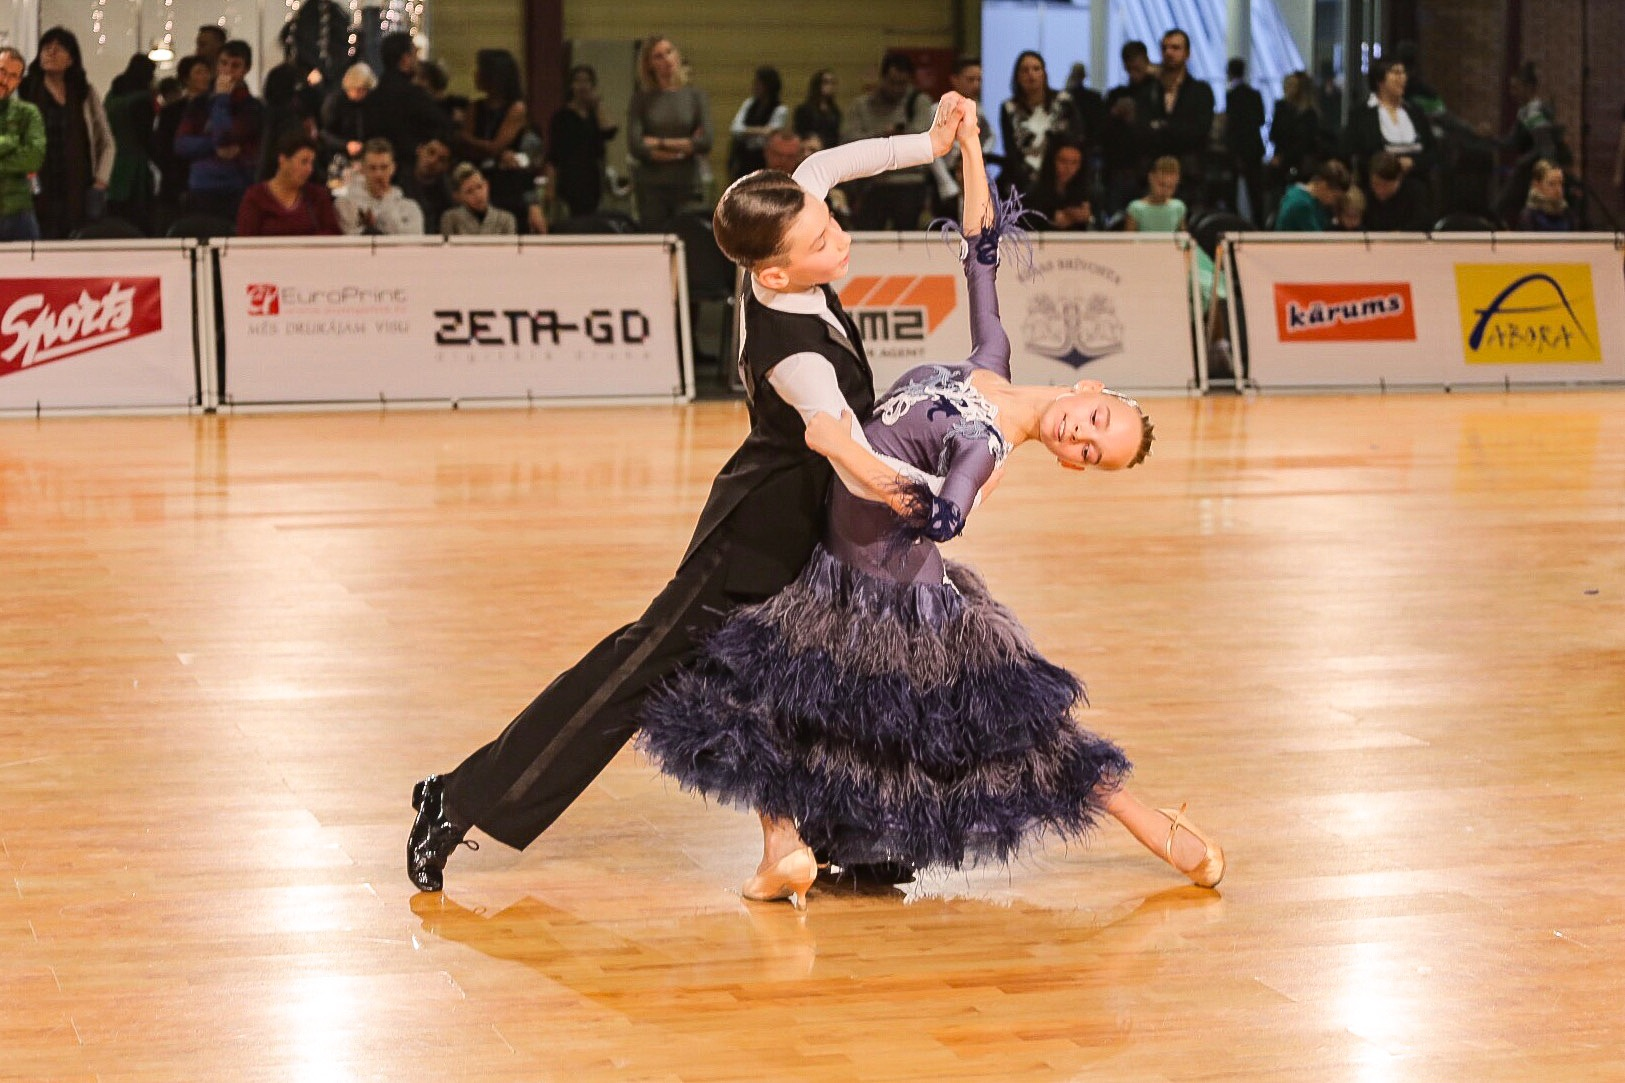 Stardust, 2018 Competitions